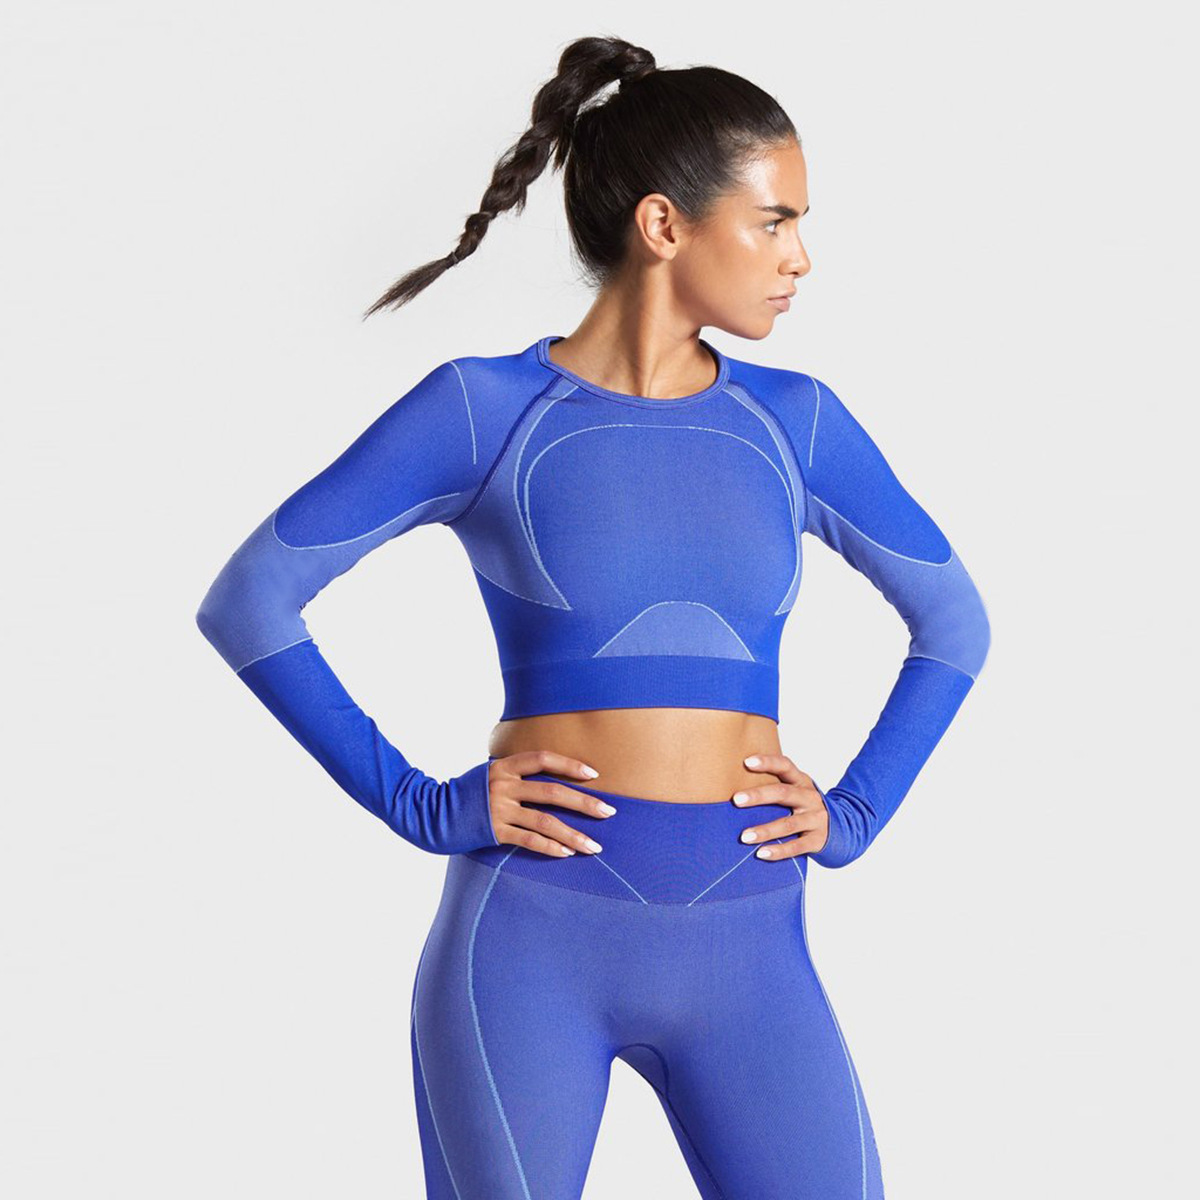 Women Seamless Love Yoga Set Yoga Tops Pants Fitness Clothing Sports Clothes GYM Cloth Long Sleeve Shirts 2pc Suits